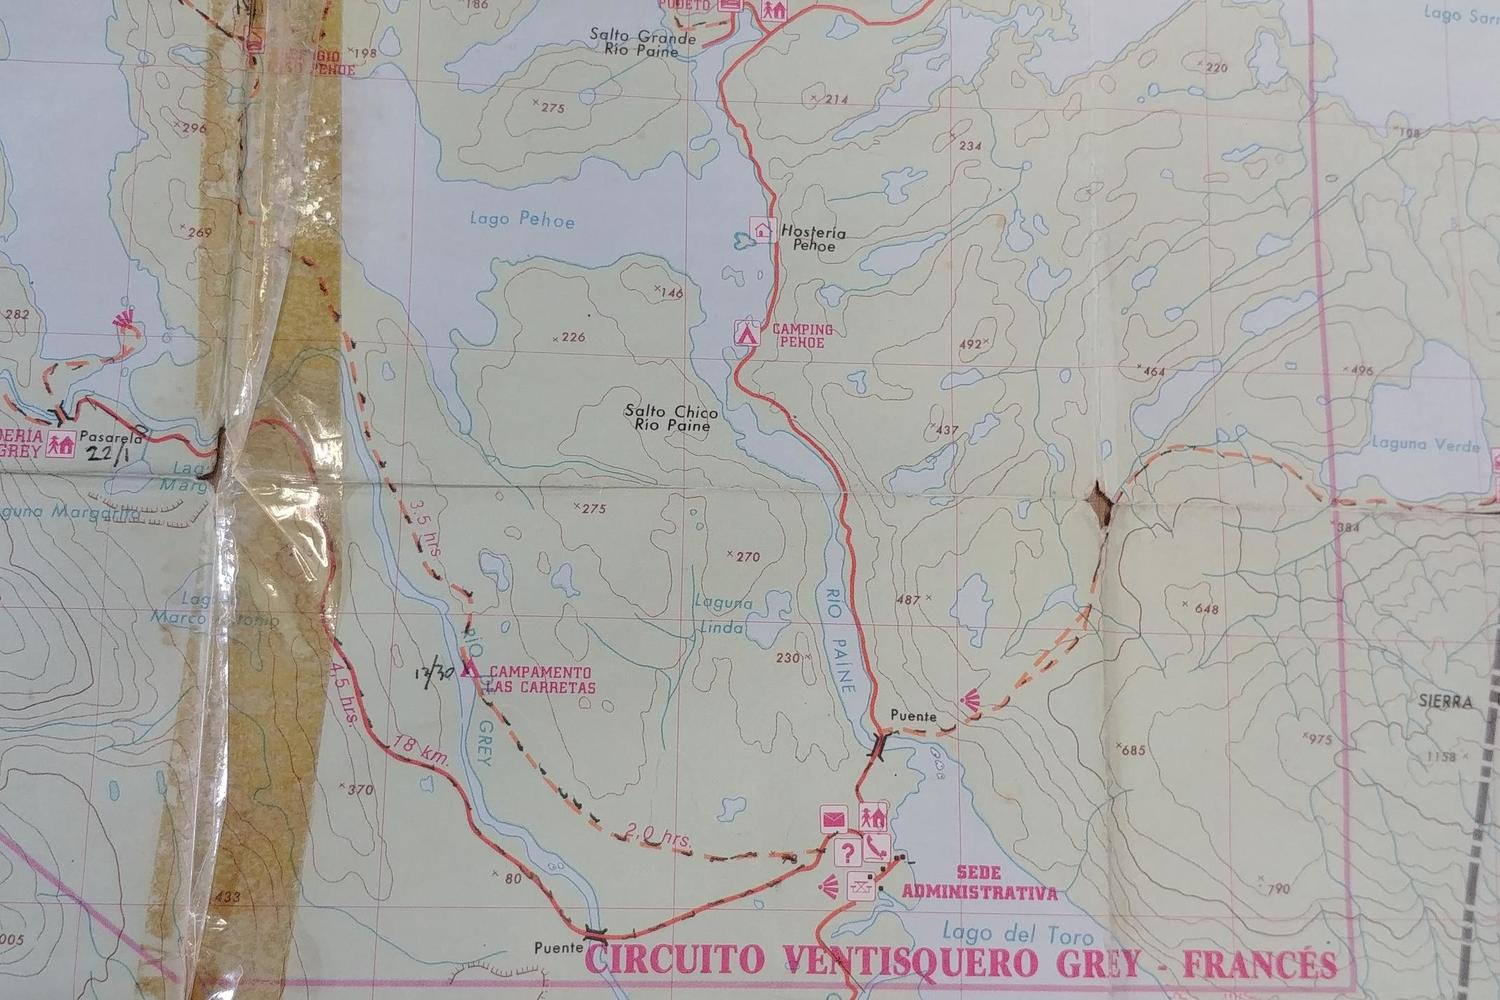 The gaffer-taped remains of my 1995 Torres del Paine map